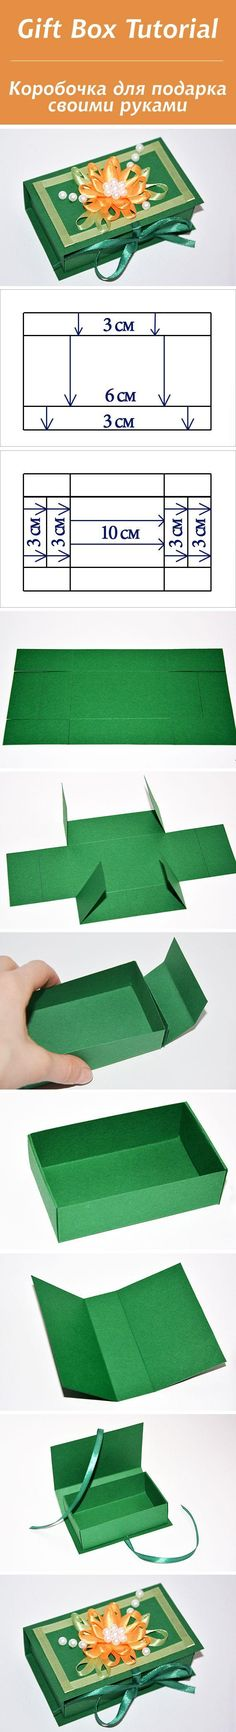 paper Crafts Ideas, Craft Ideas on paper Crafts